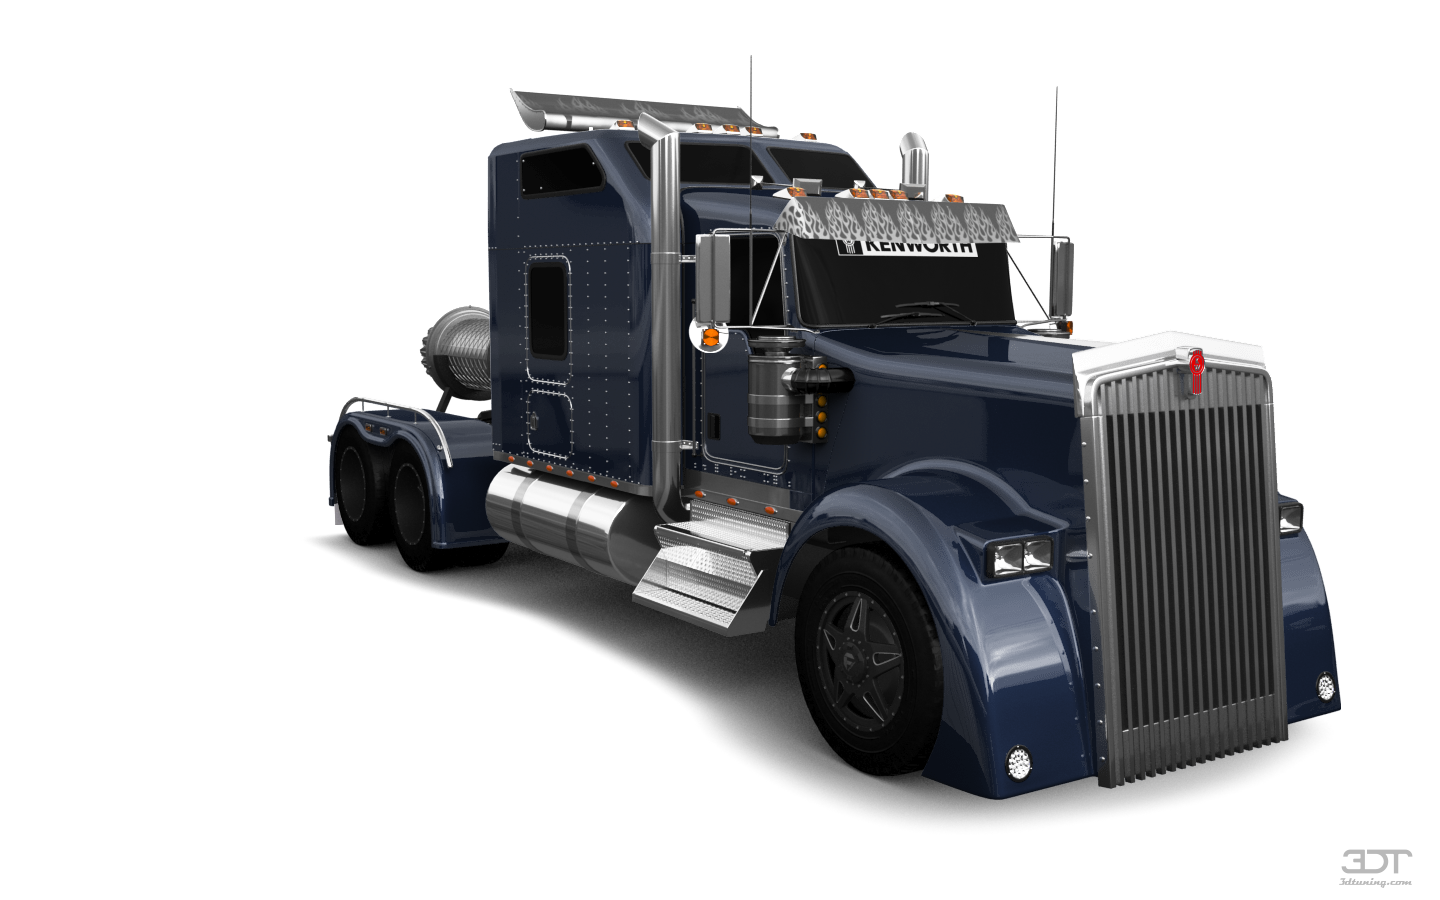 Kenworth W900 Sleeper Cab Truck 2015 tuning